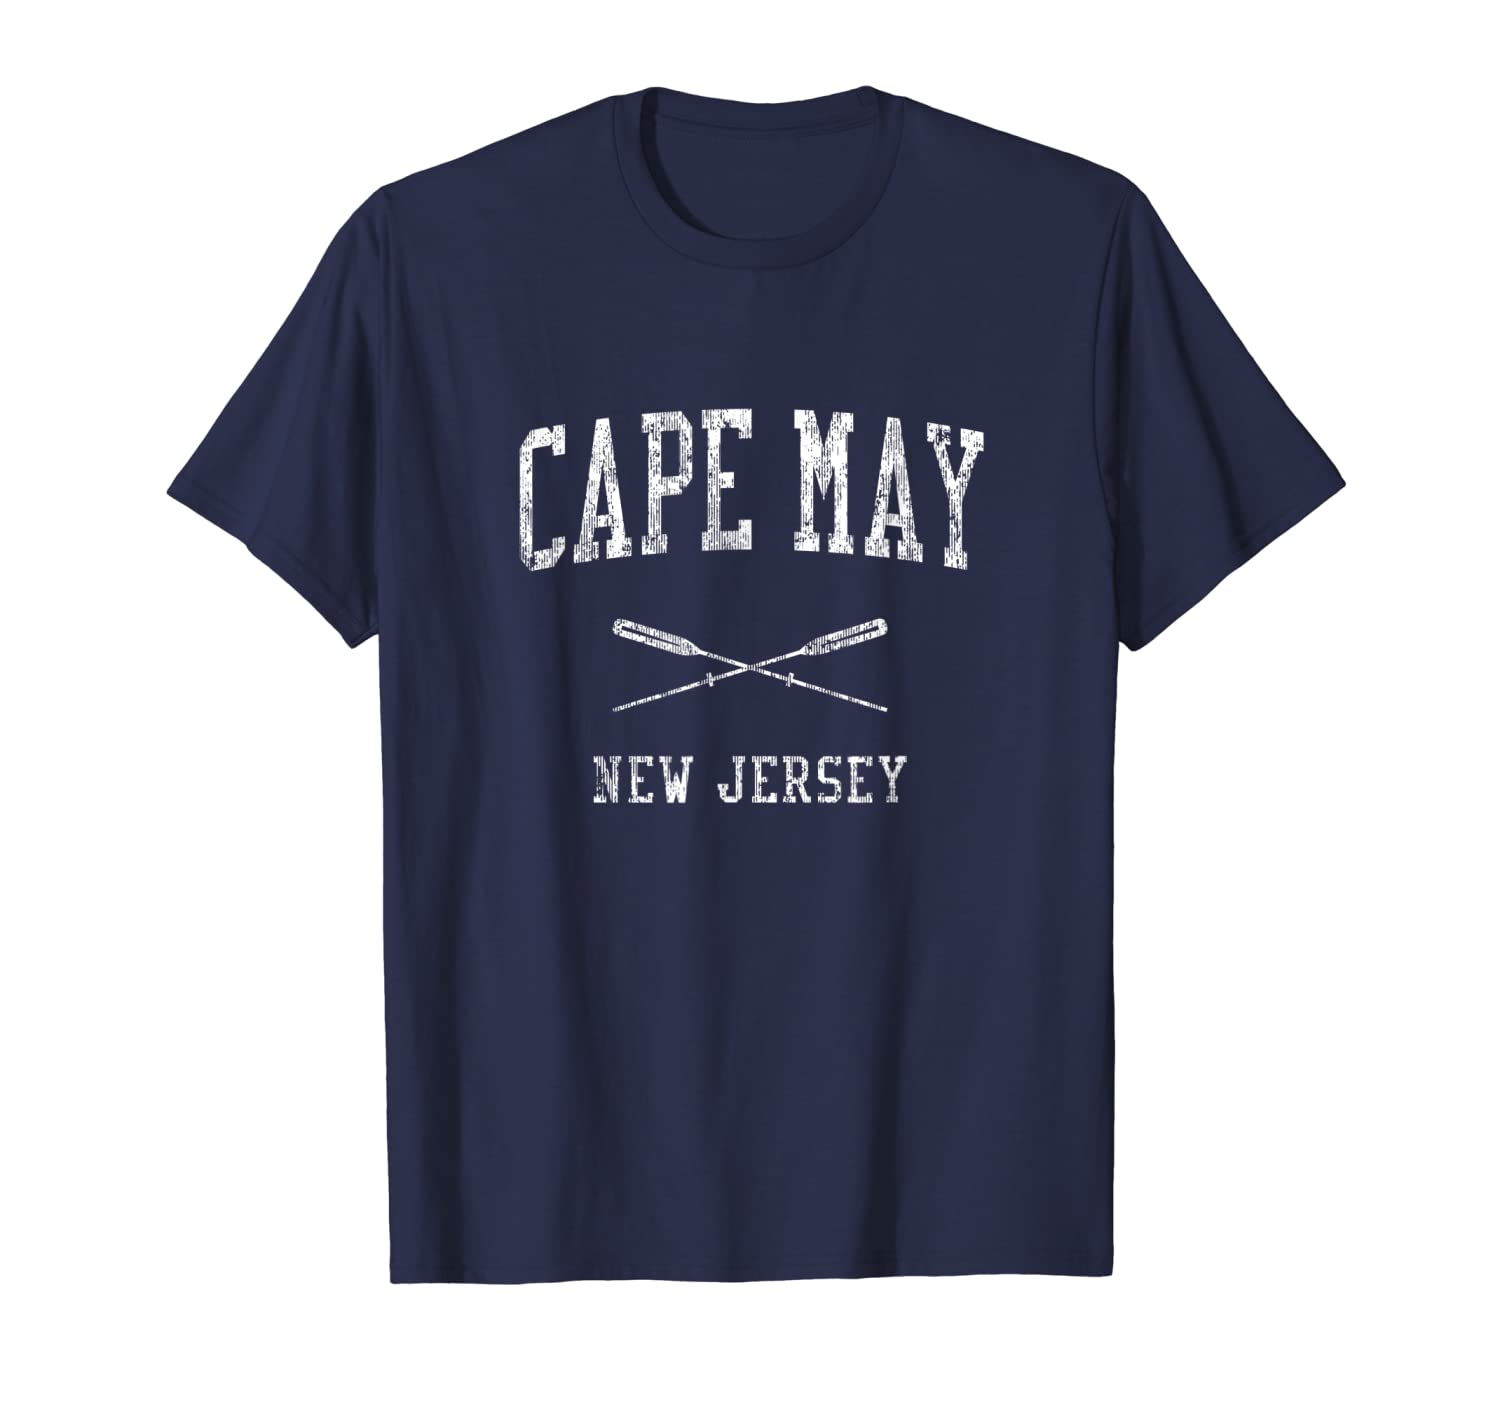 Cape May New Jersey NJ Vintage Nautical Sports Design Tee